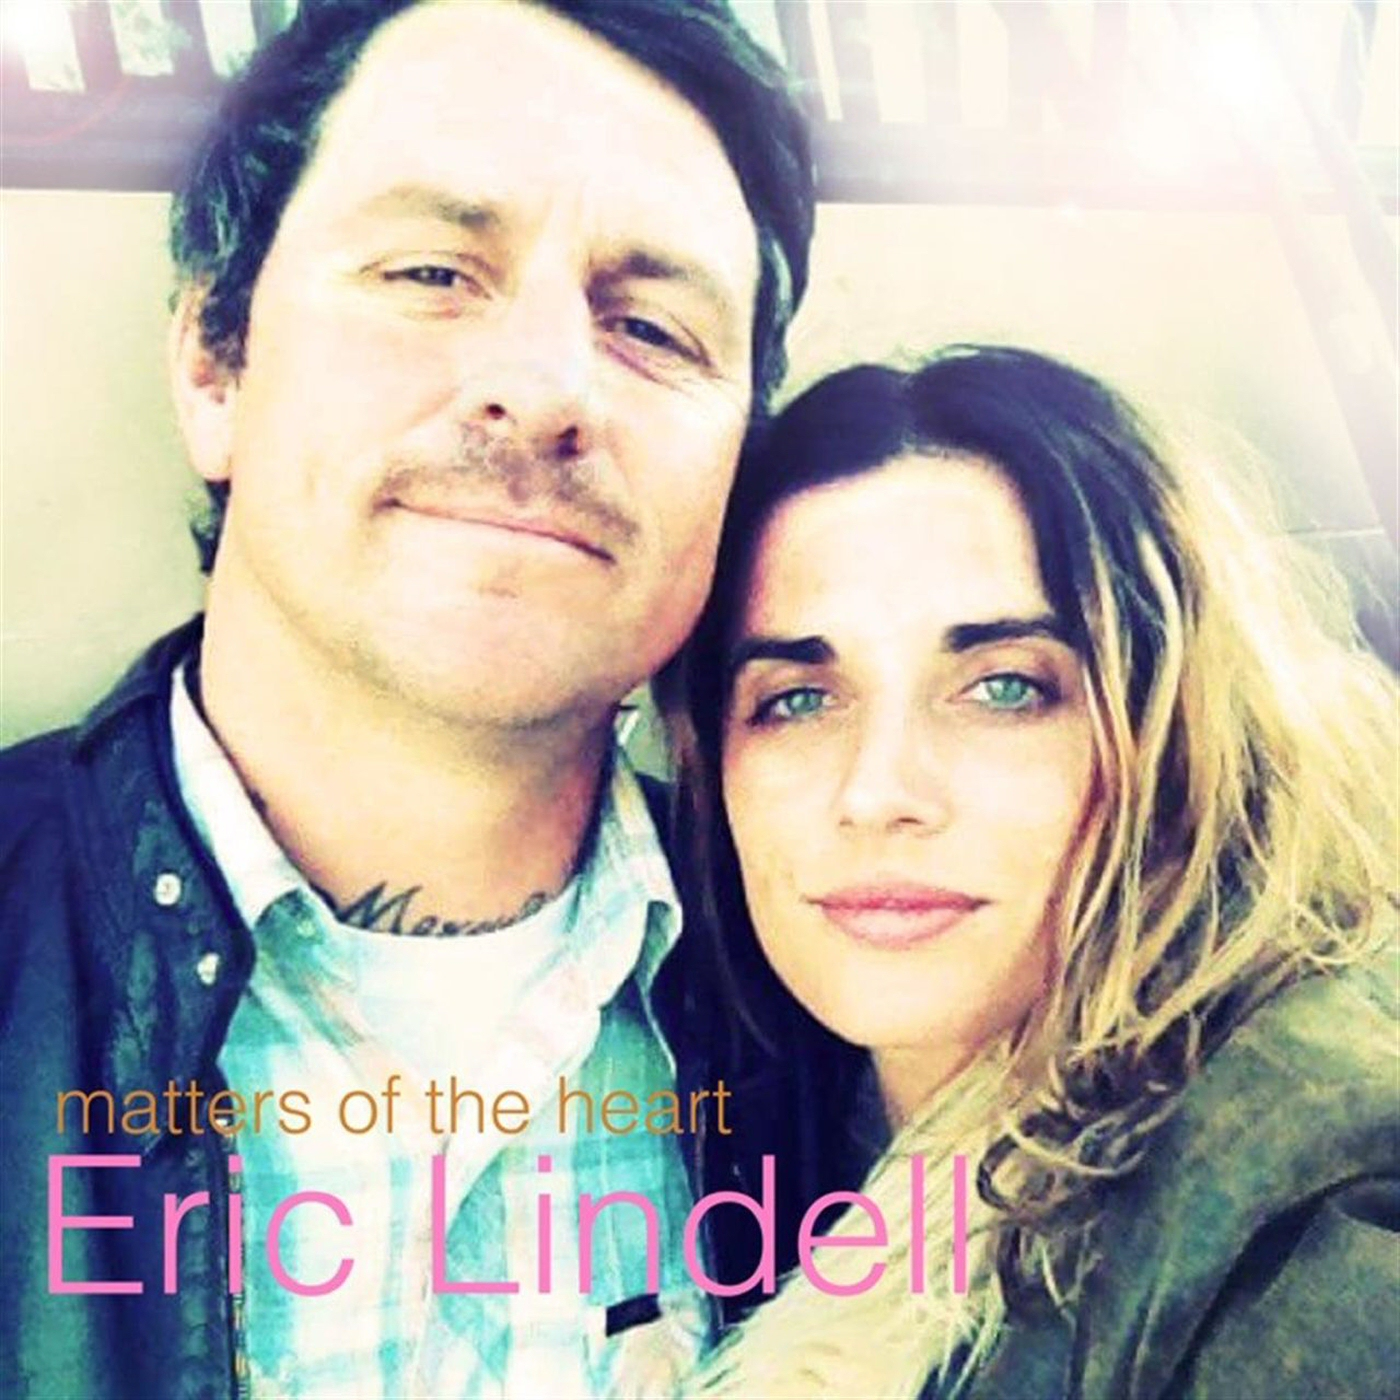 ERIC LINDELL – Couldn't leave you if i tried